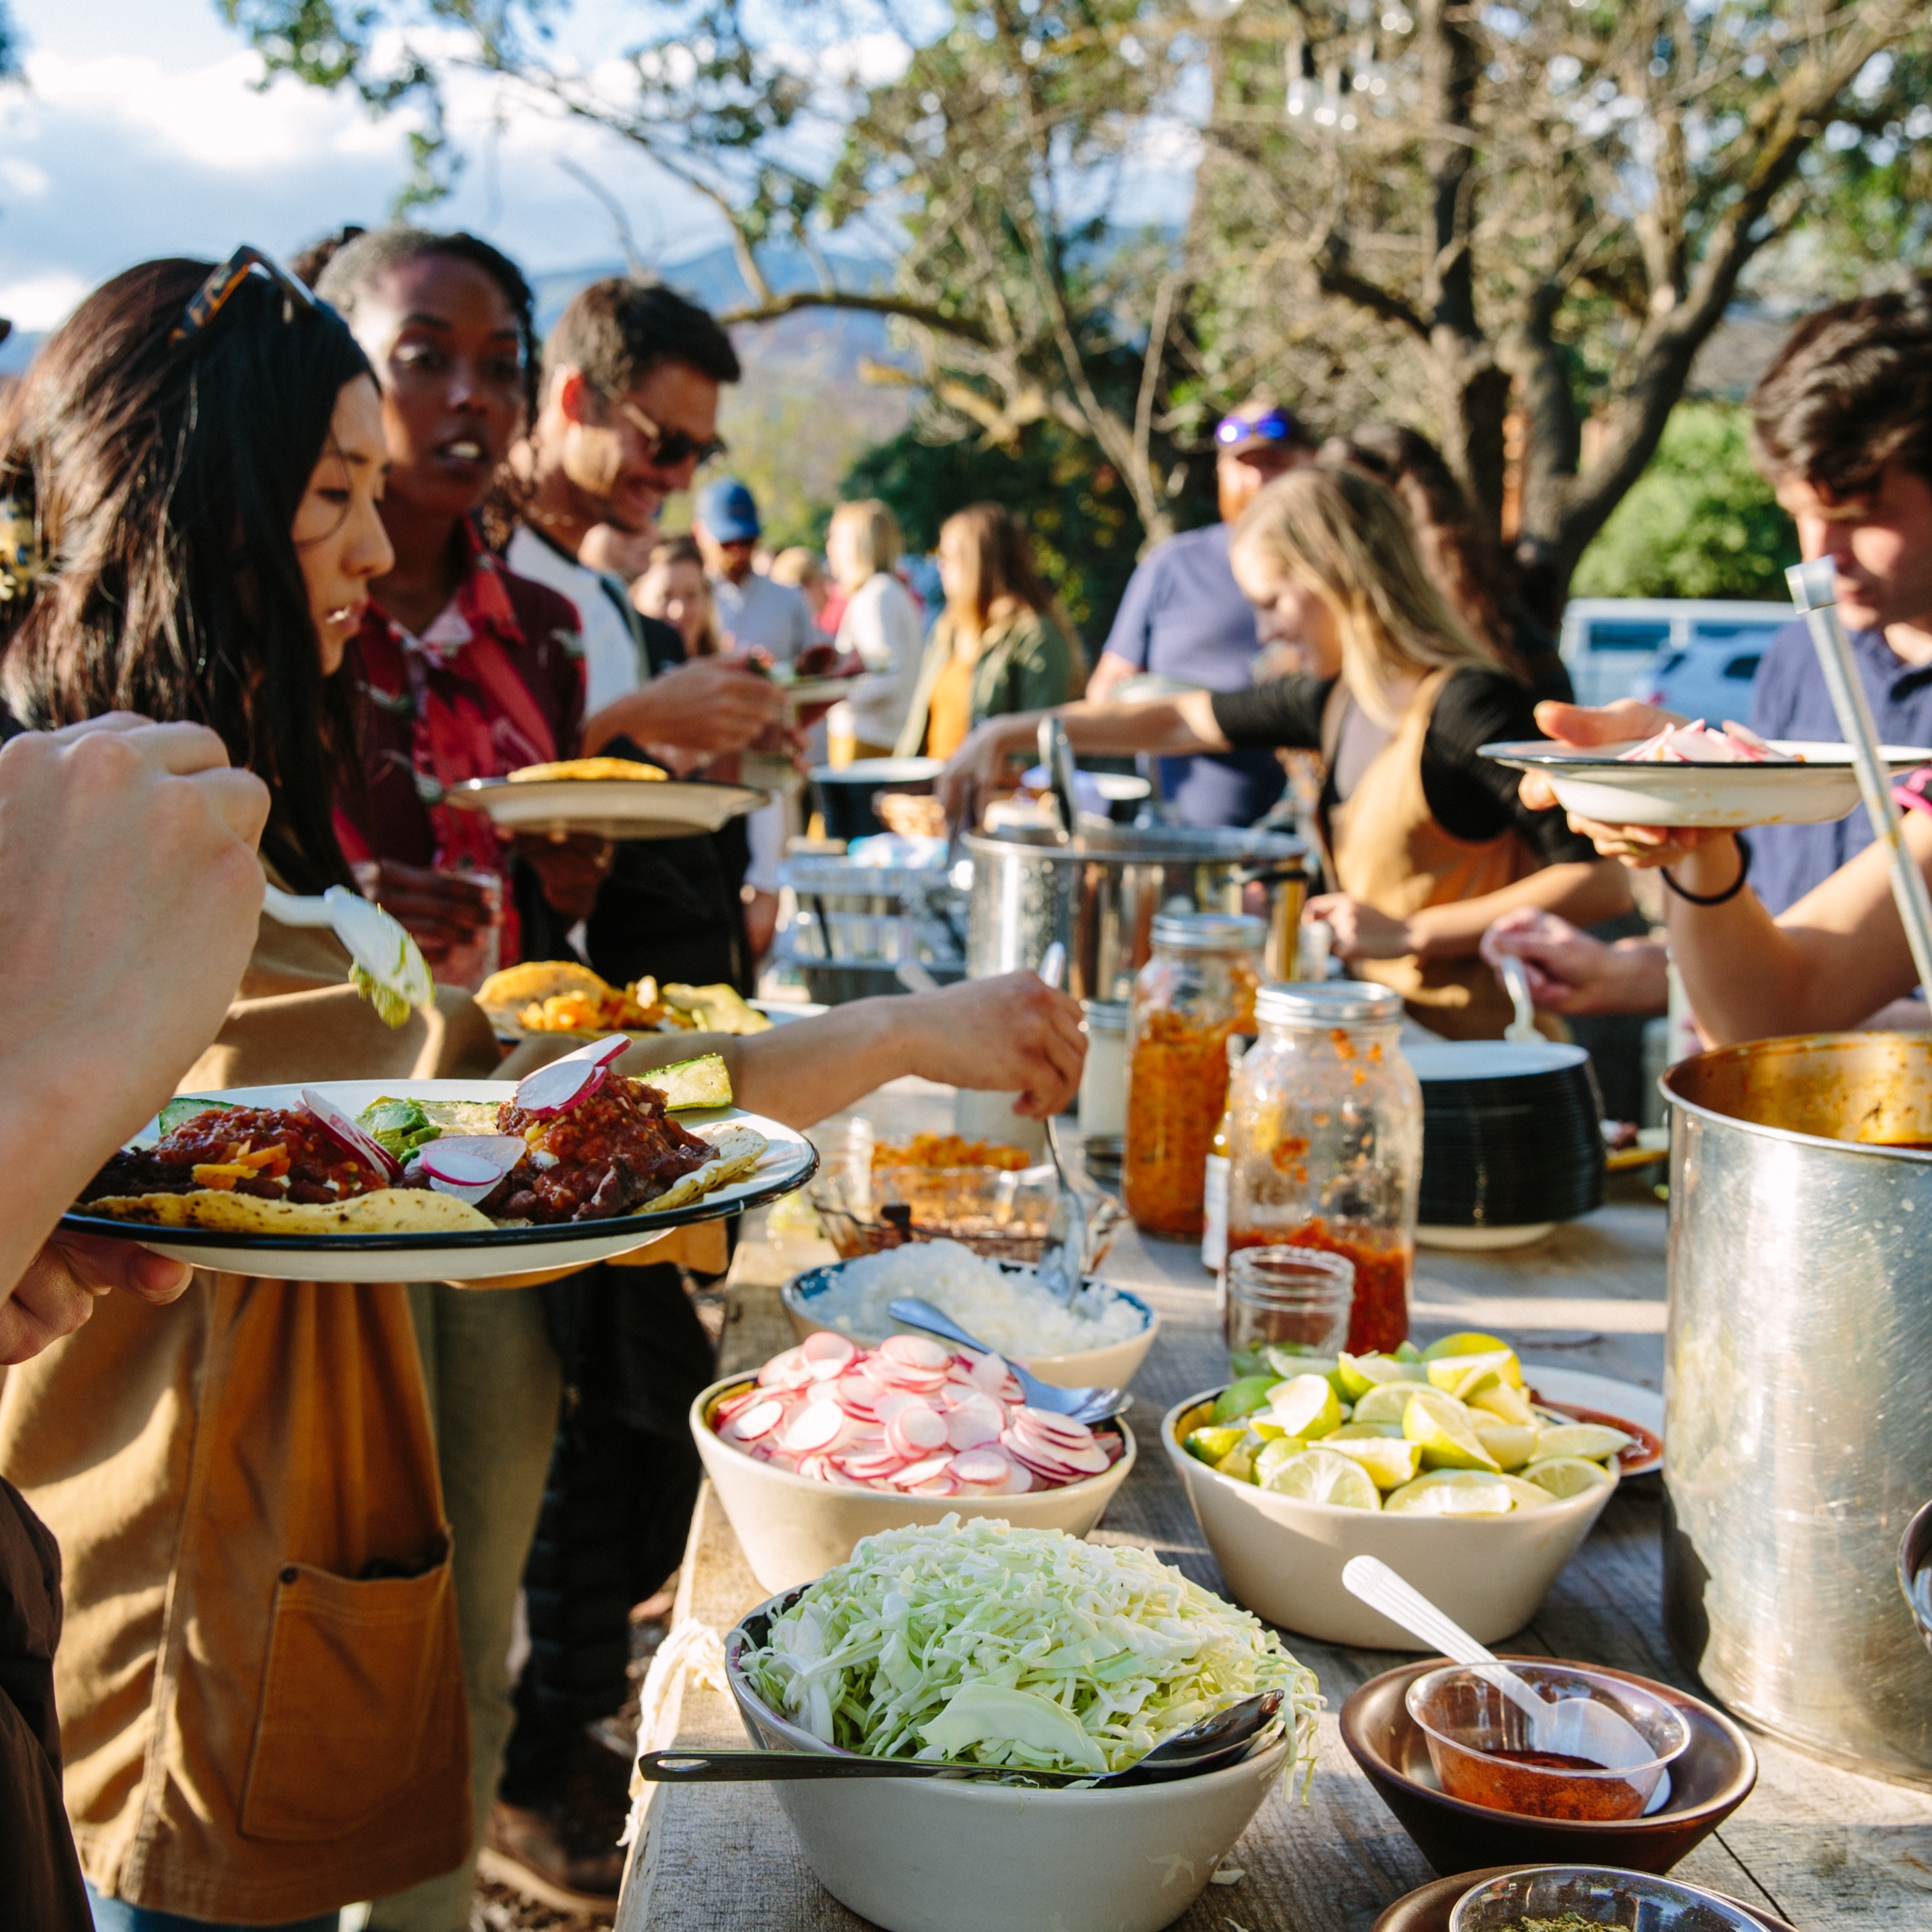 Have your gathering at Steel Acres - Please fill out the form above or email us directly at info@steelacres.com to discuss event options.